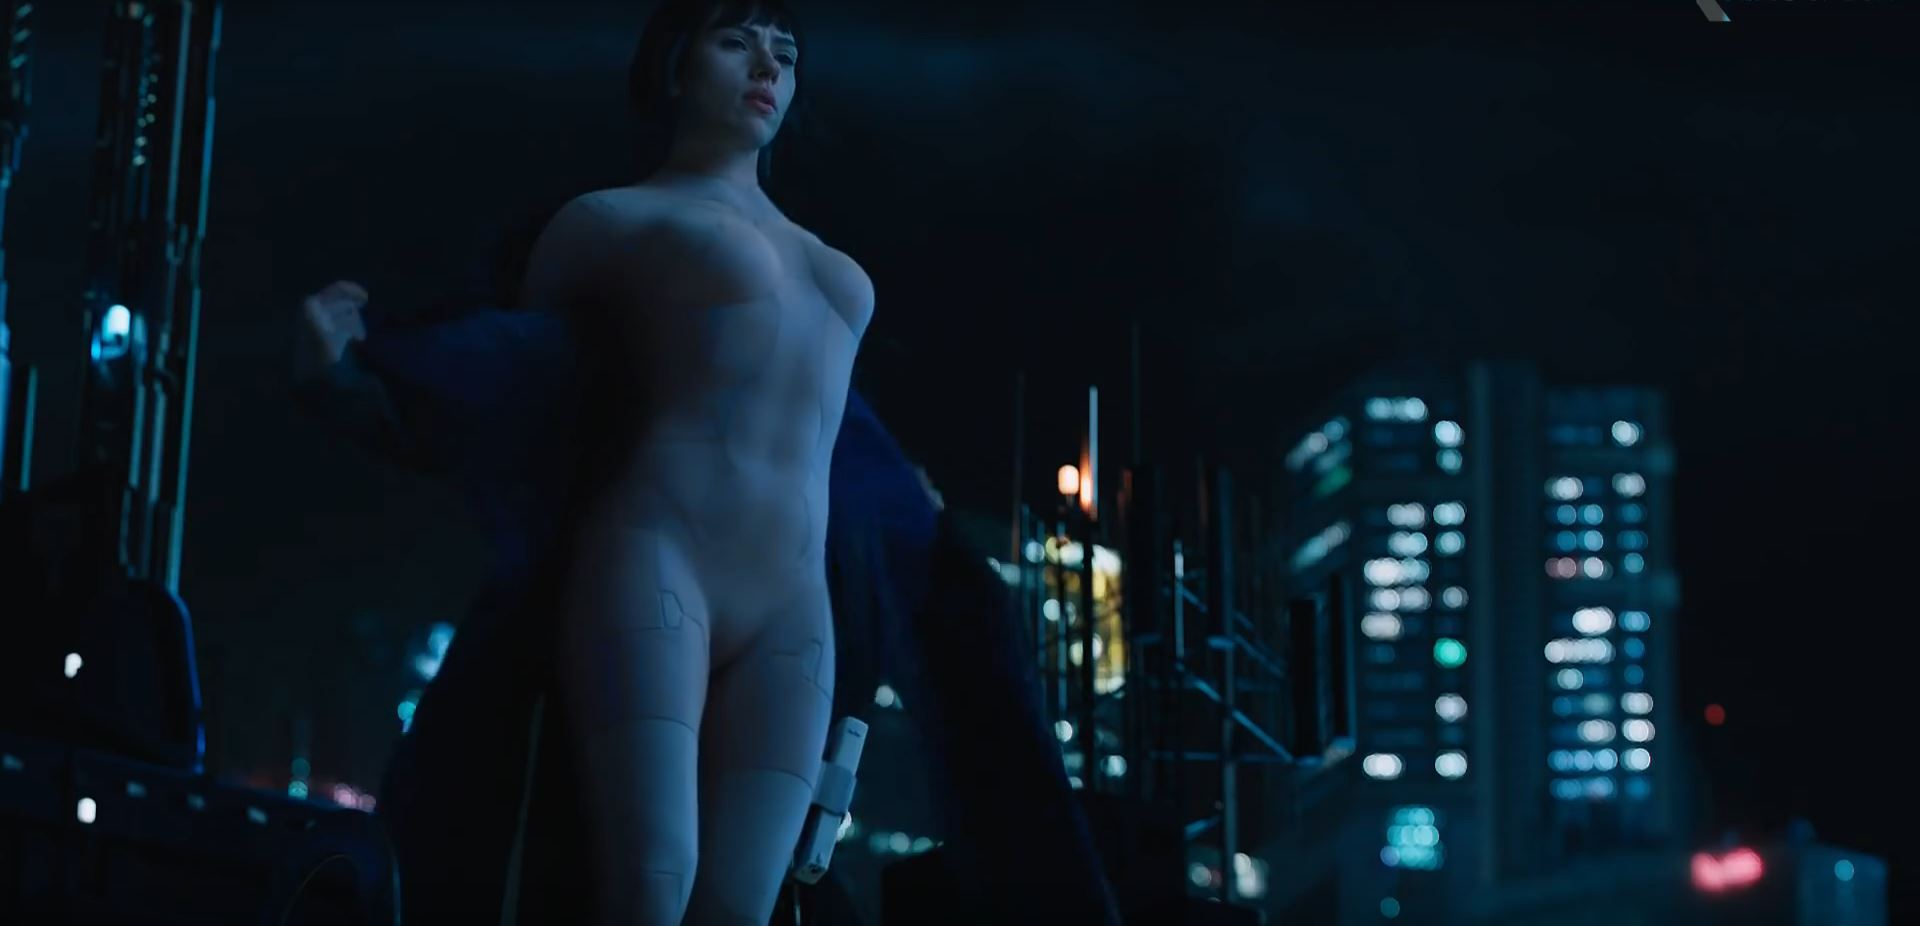 Scarlett Johansson sexy as The Major - Ghost In The Shell - Super Bowl Trailers